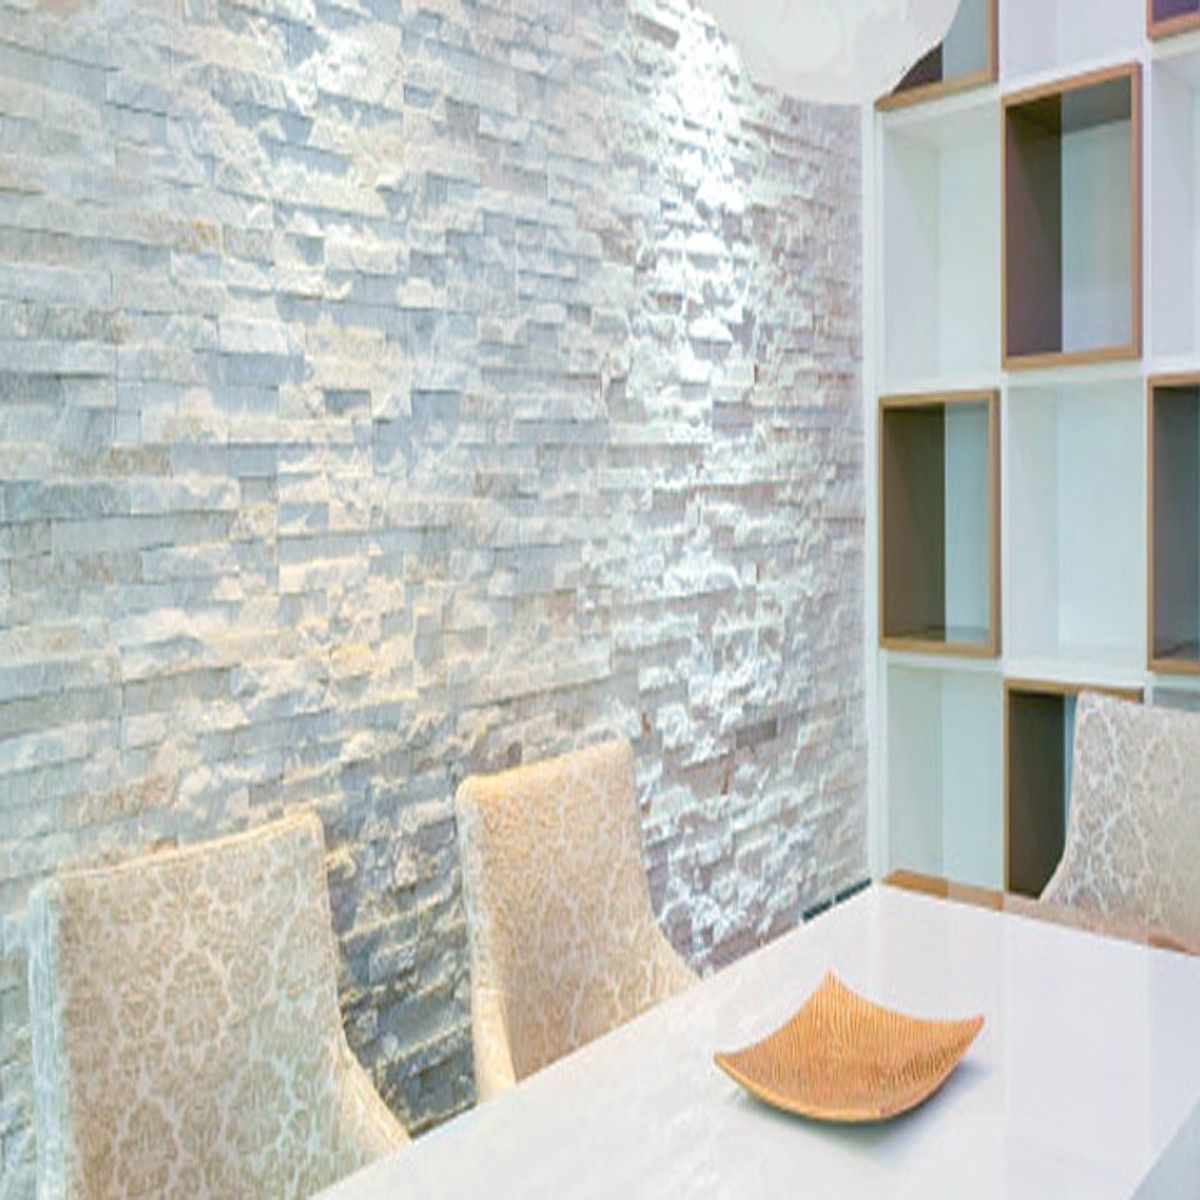 Kitchen Tiles Brick Effect the slatstone range of tiles is perfect if you're looking for